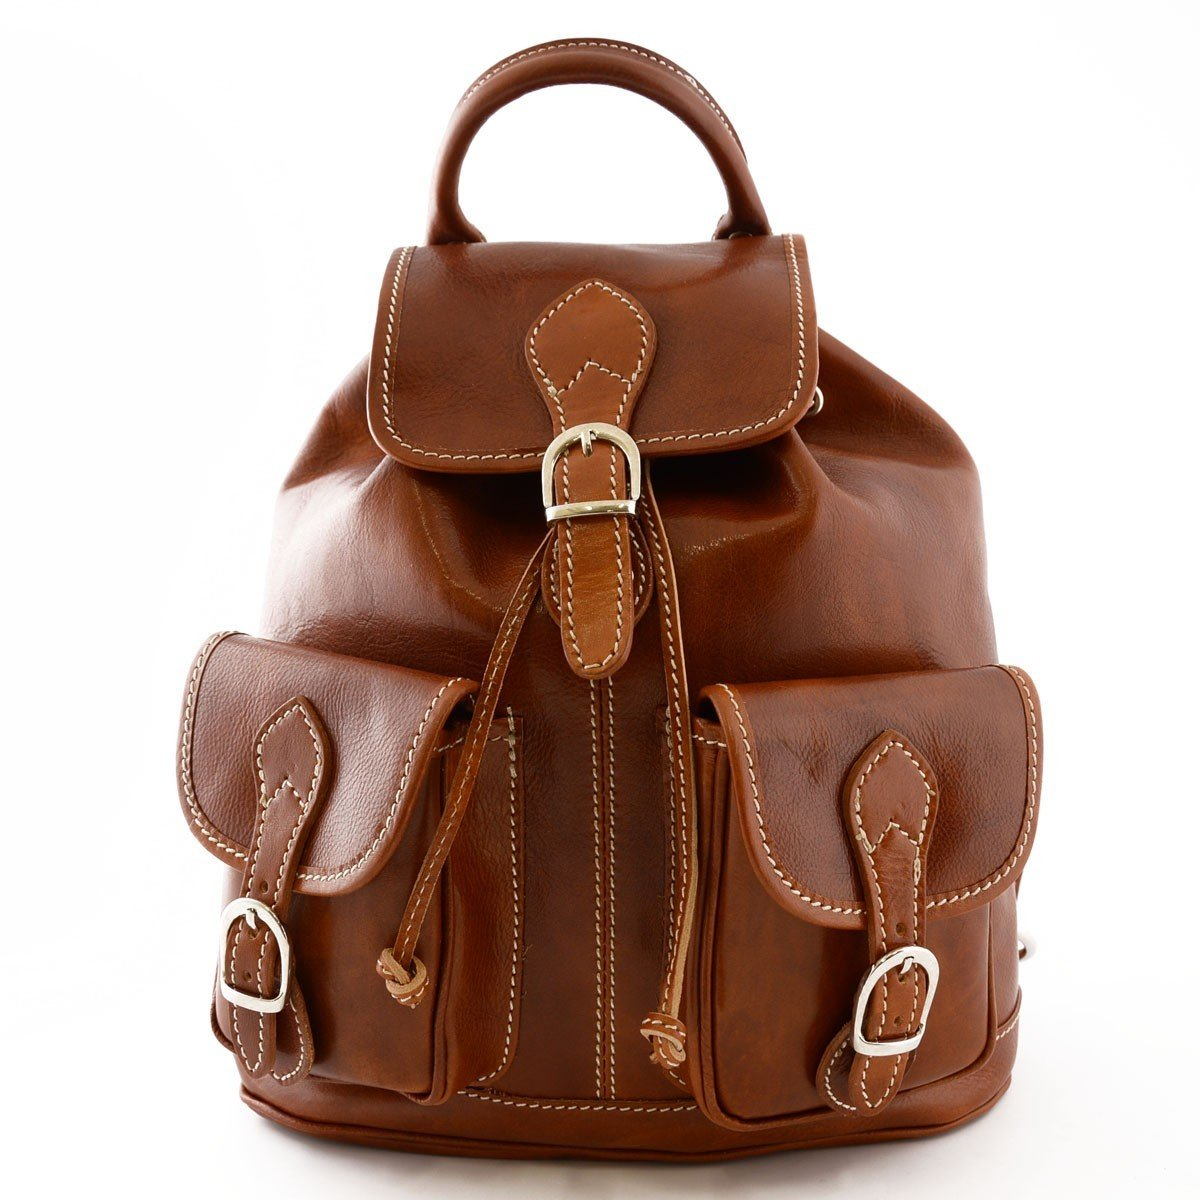 Made In Italy Leather Backpack Color Cognac - Backpack   B01ABI10S6